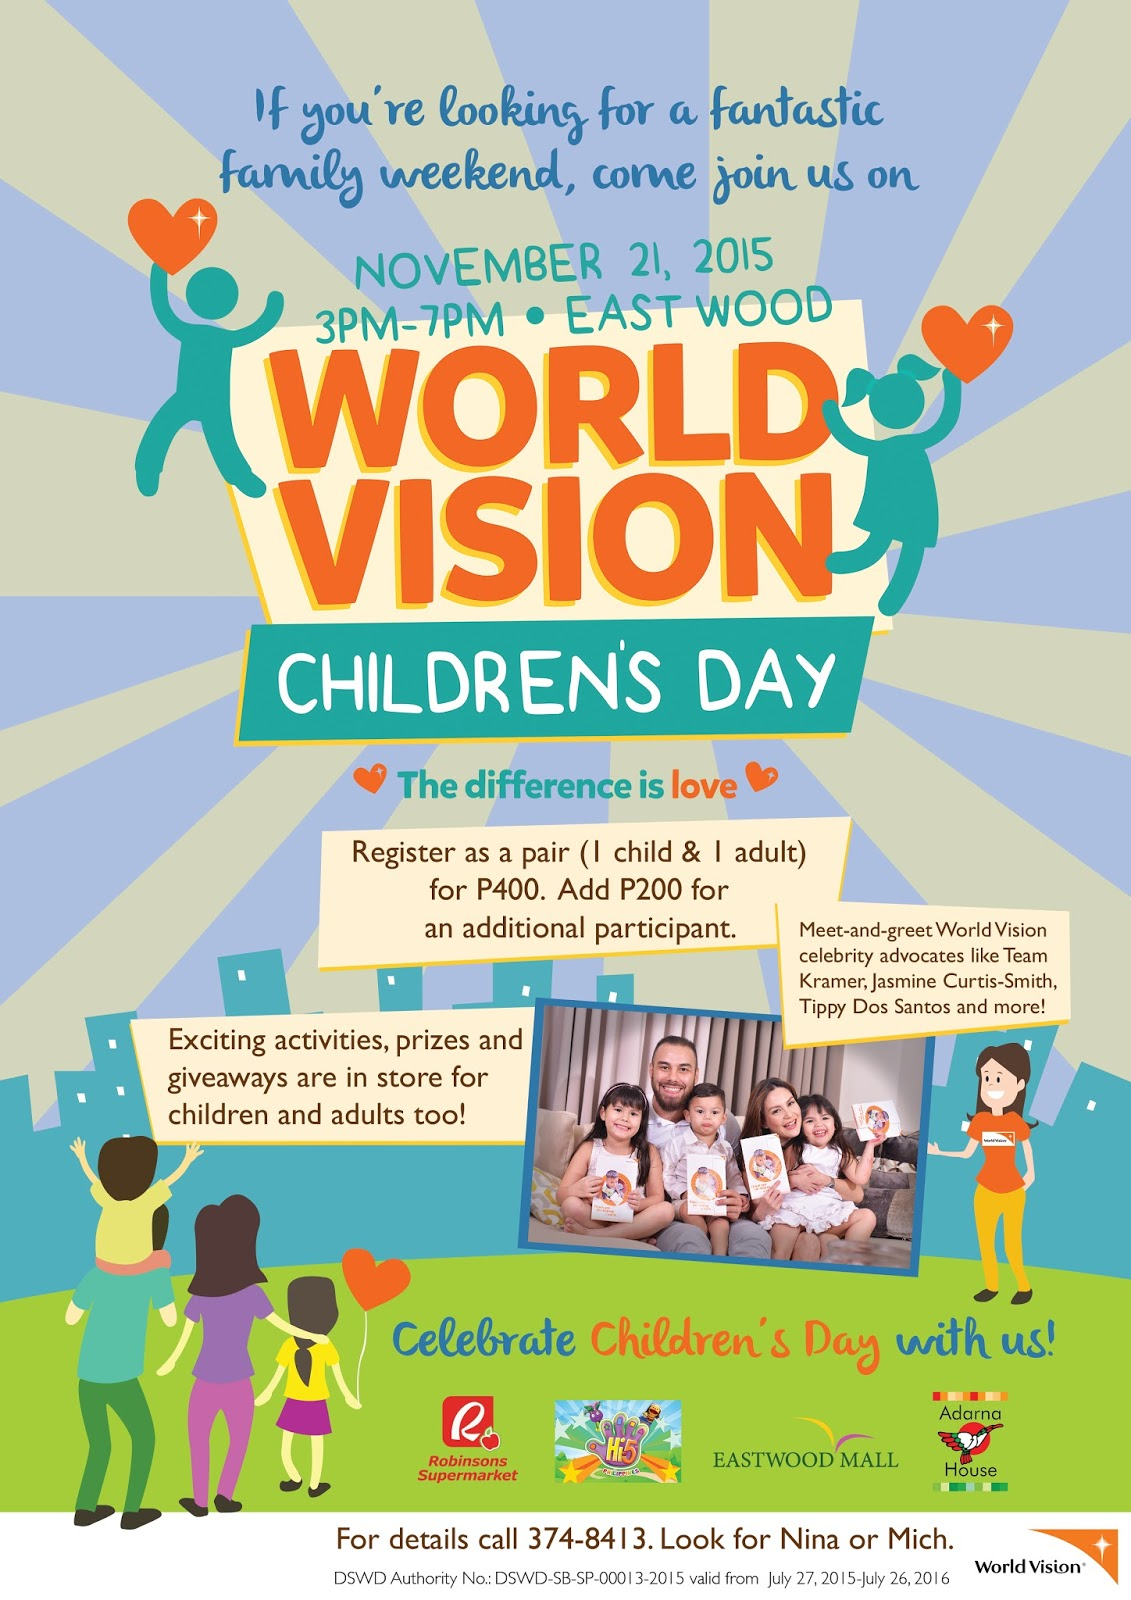 ♥ Give a Noche Buena Gift this Christmas through World Vision ♥